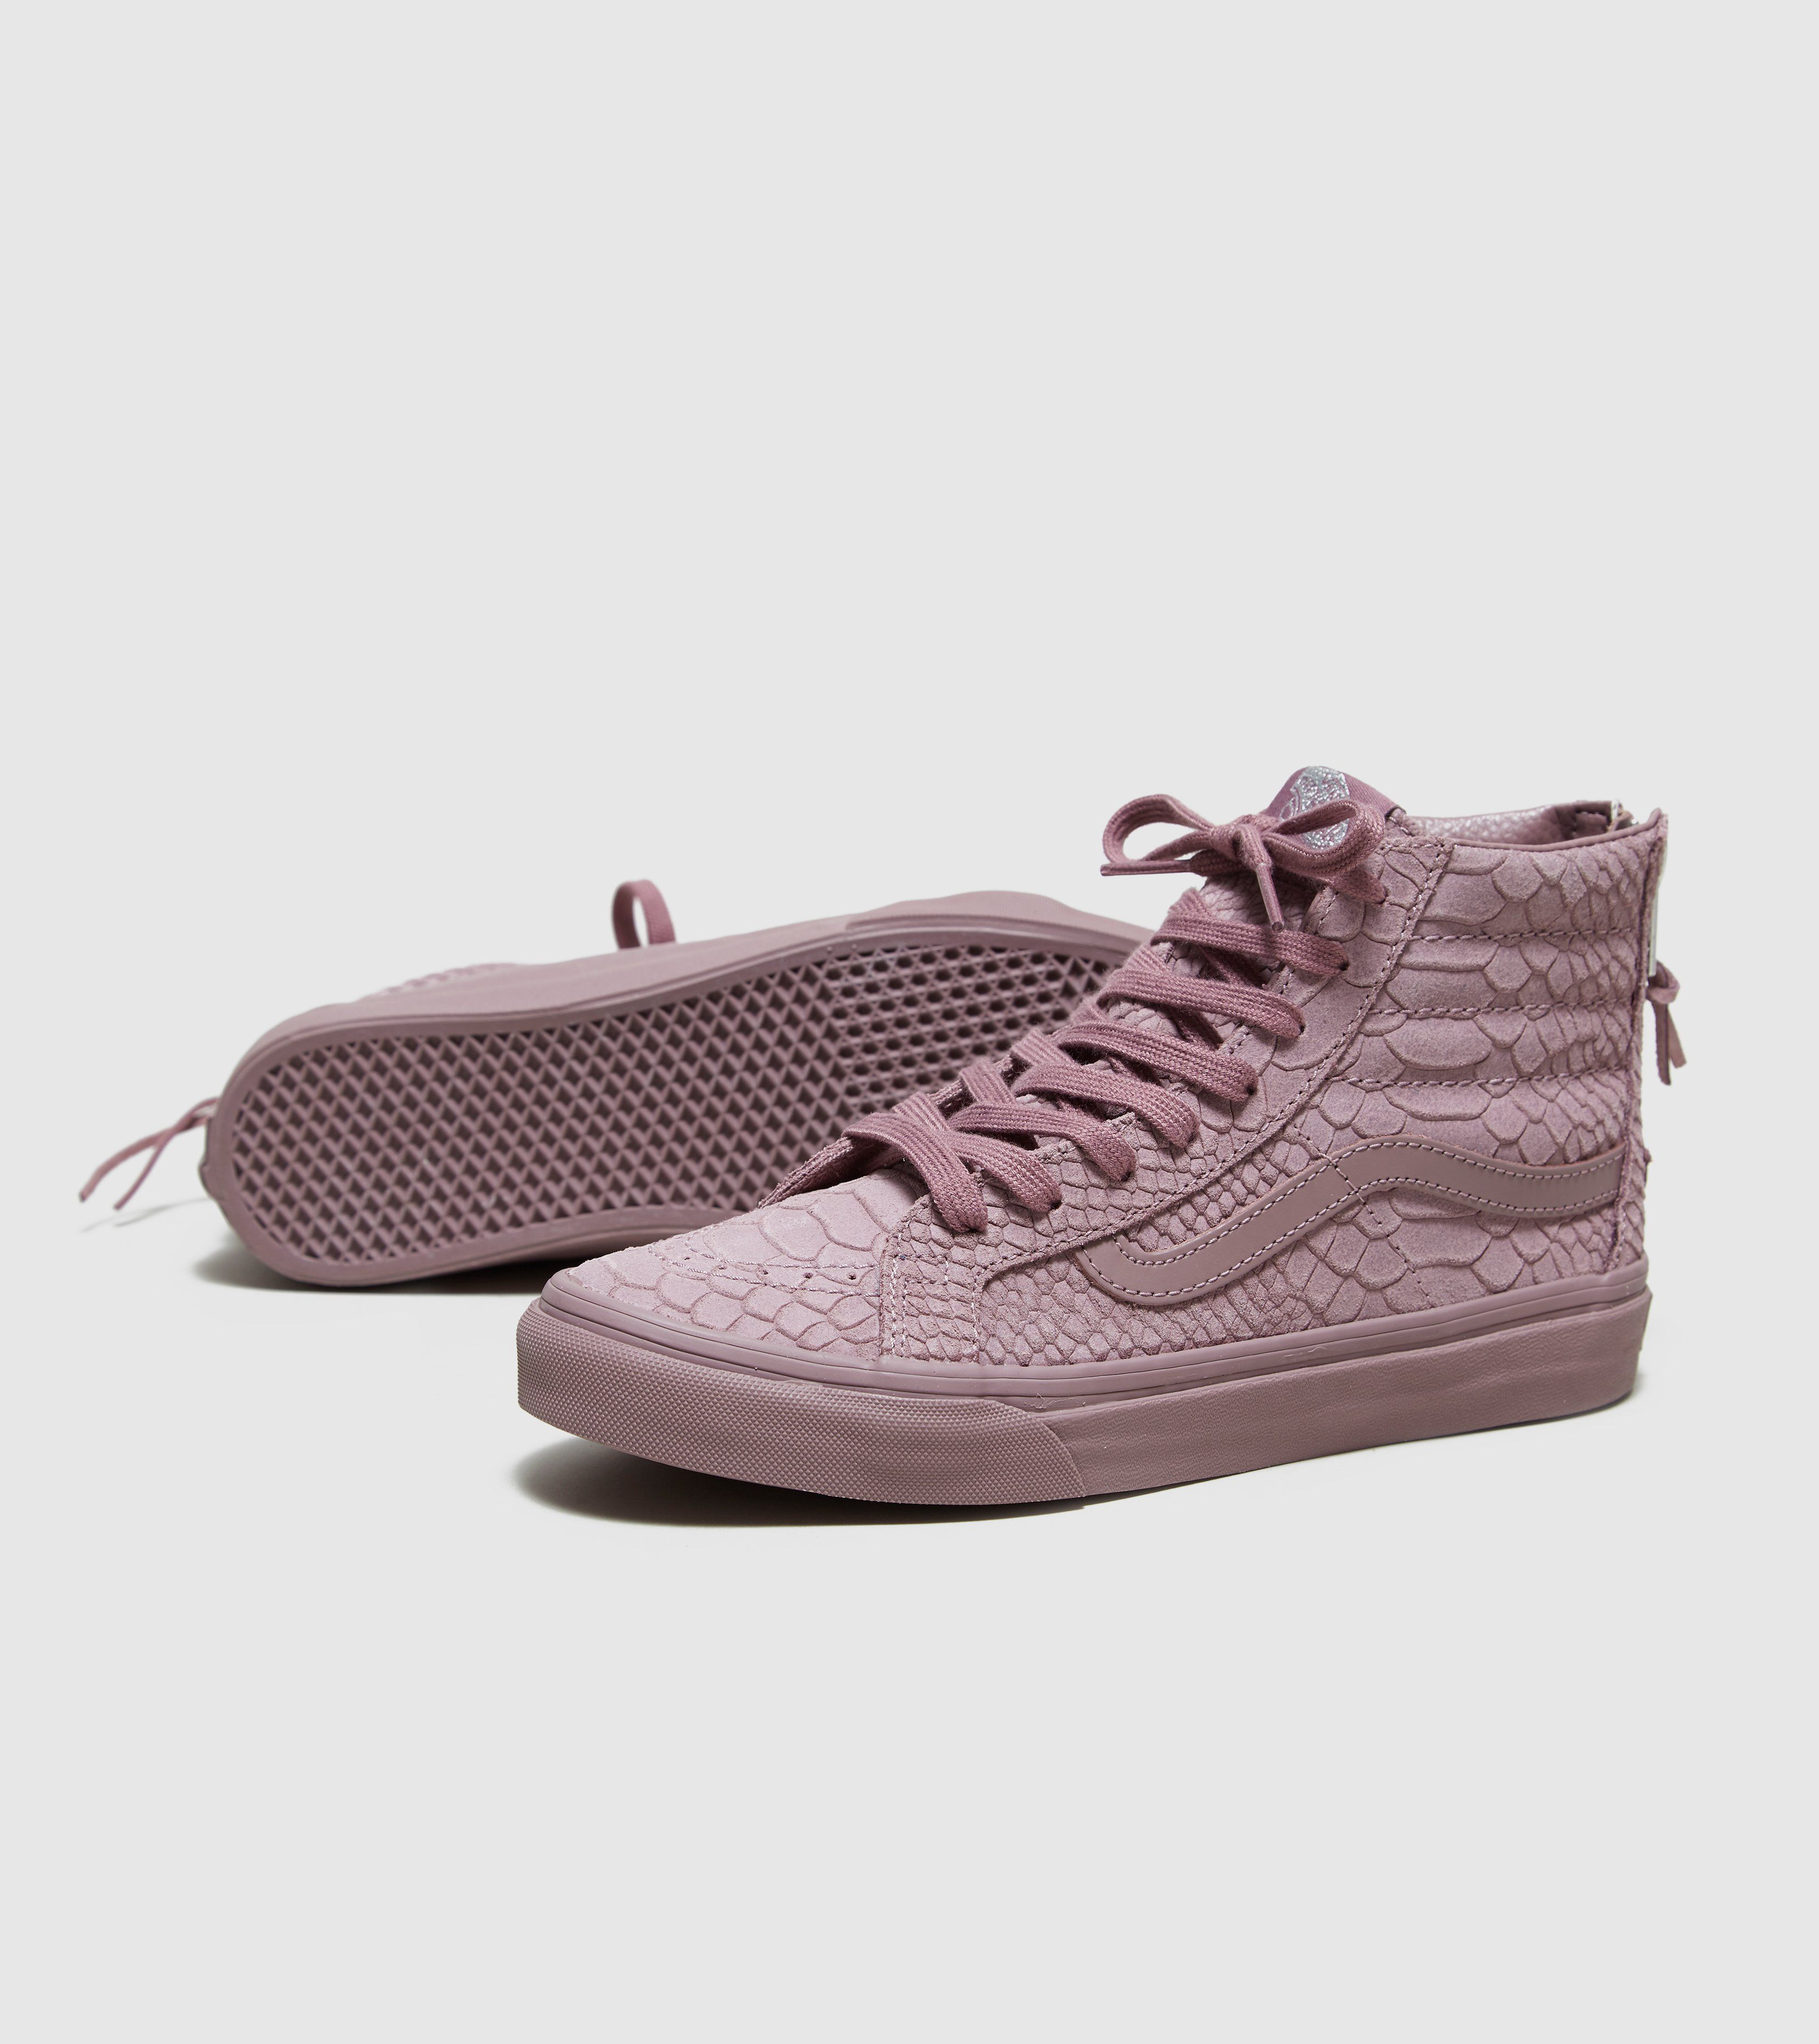 287579f624 Vans Sk8-Hi Snakeskin Leather Zip Women s